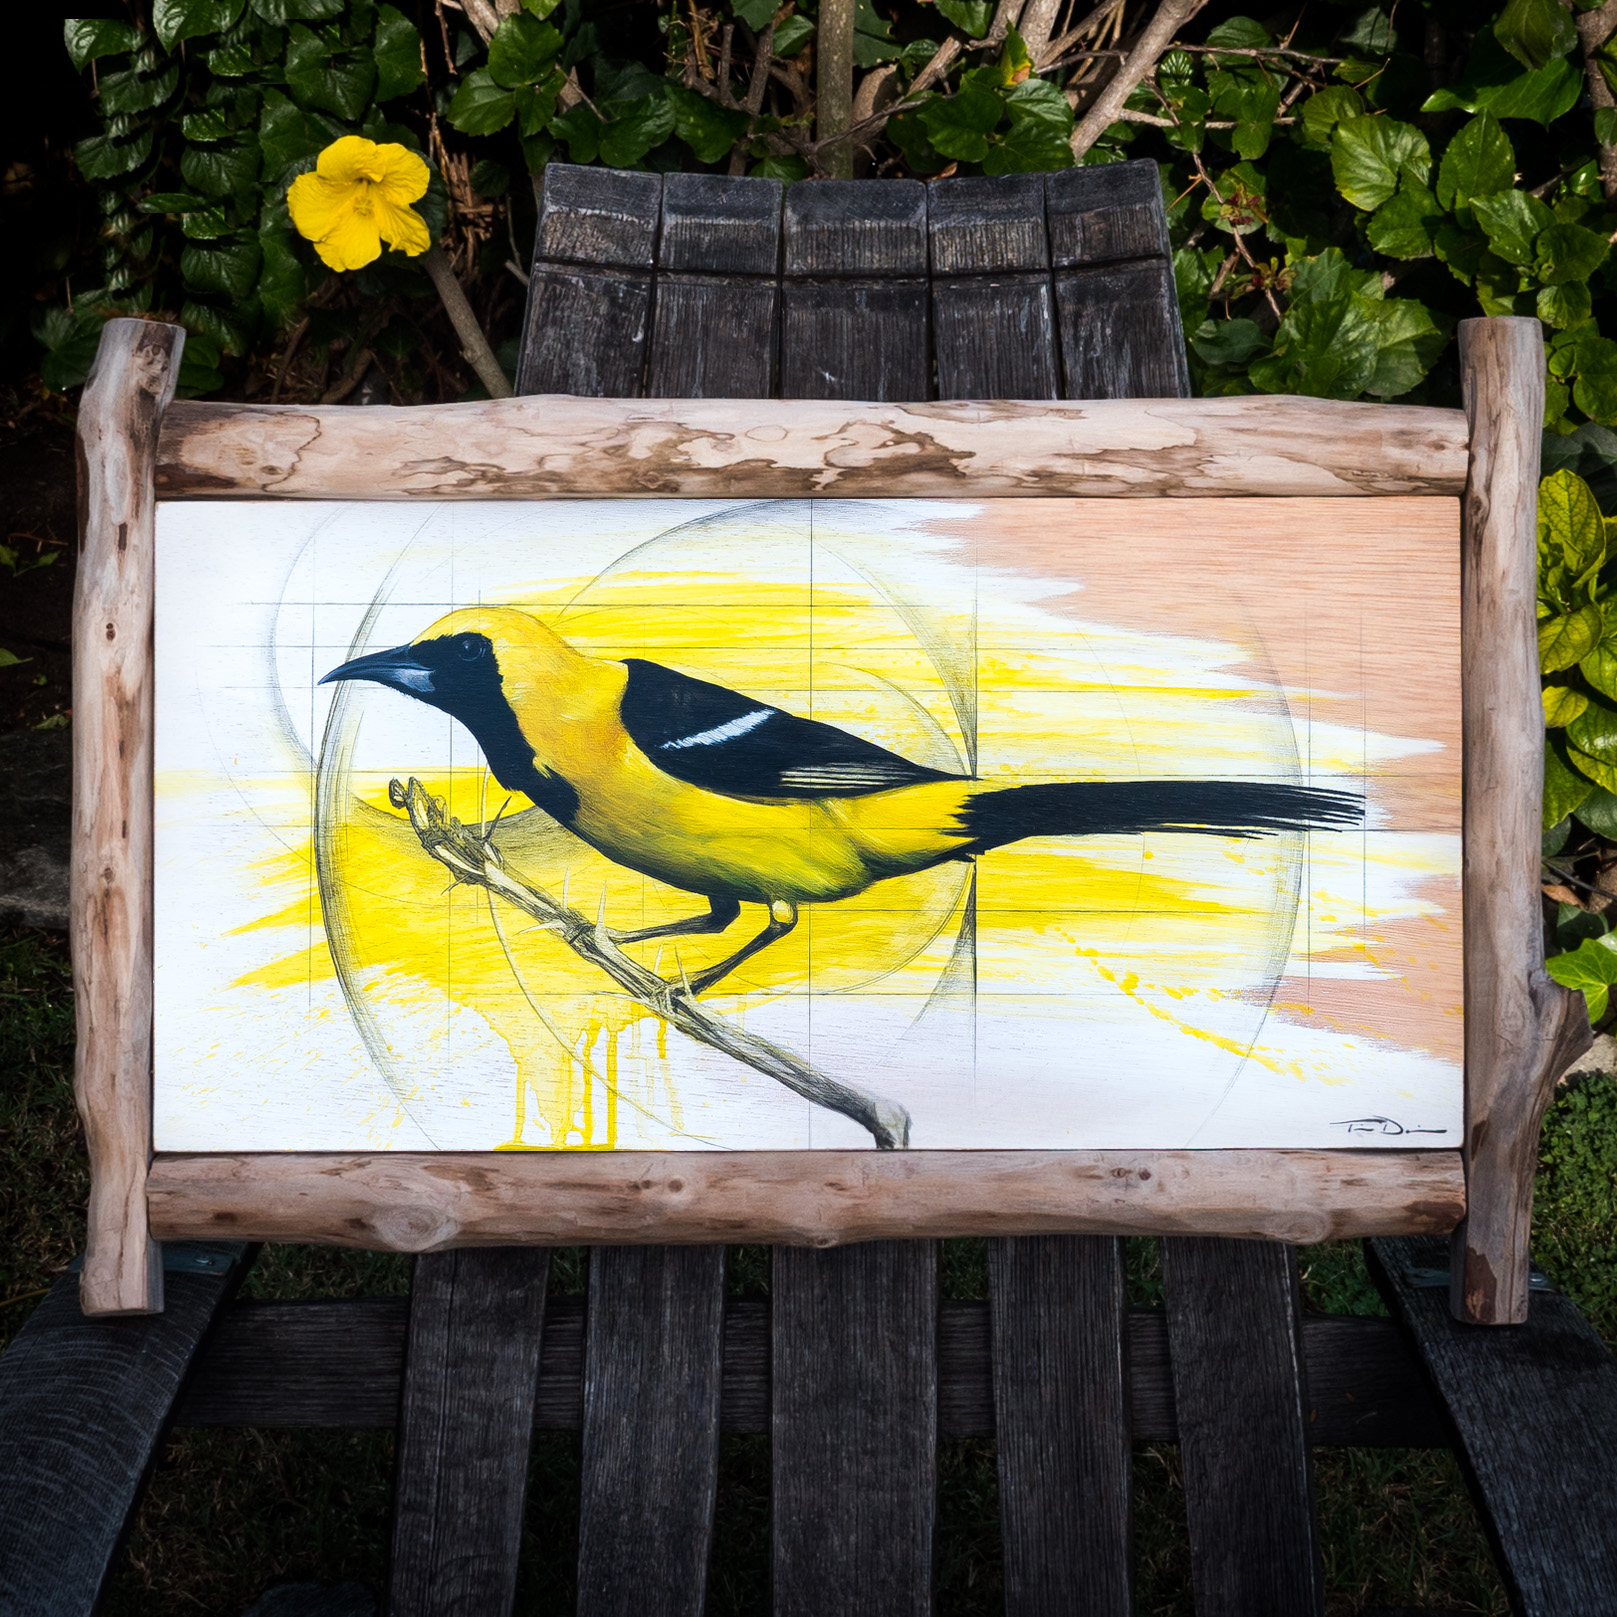 Hooded Oriole - Original oil painting by wildlife artist Timothy Davison of the Davison Art Company featuring a hooded oriole perched on top of a branch with thorns. Circles and splashed yellow paint in the background. This colorful painting appears to come off the surface, revealing the wood grain in the background. Custom framed with a driftwood frame. © COPYRIGHT TIMOTHY DAVISON